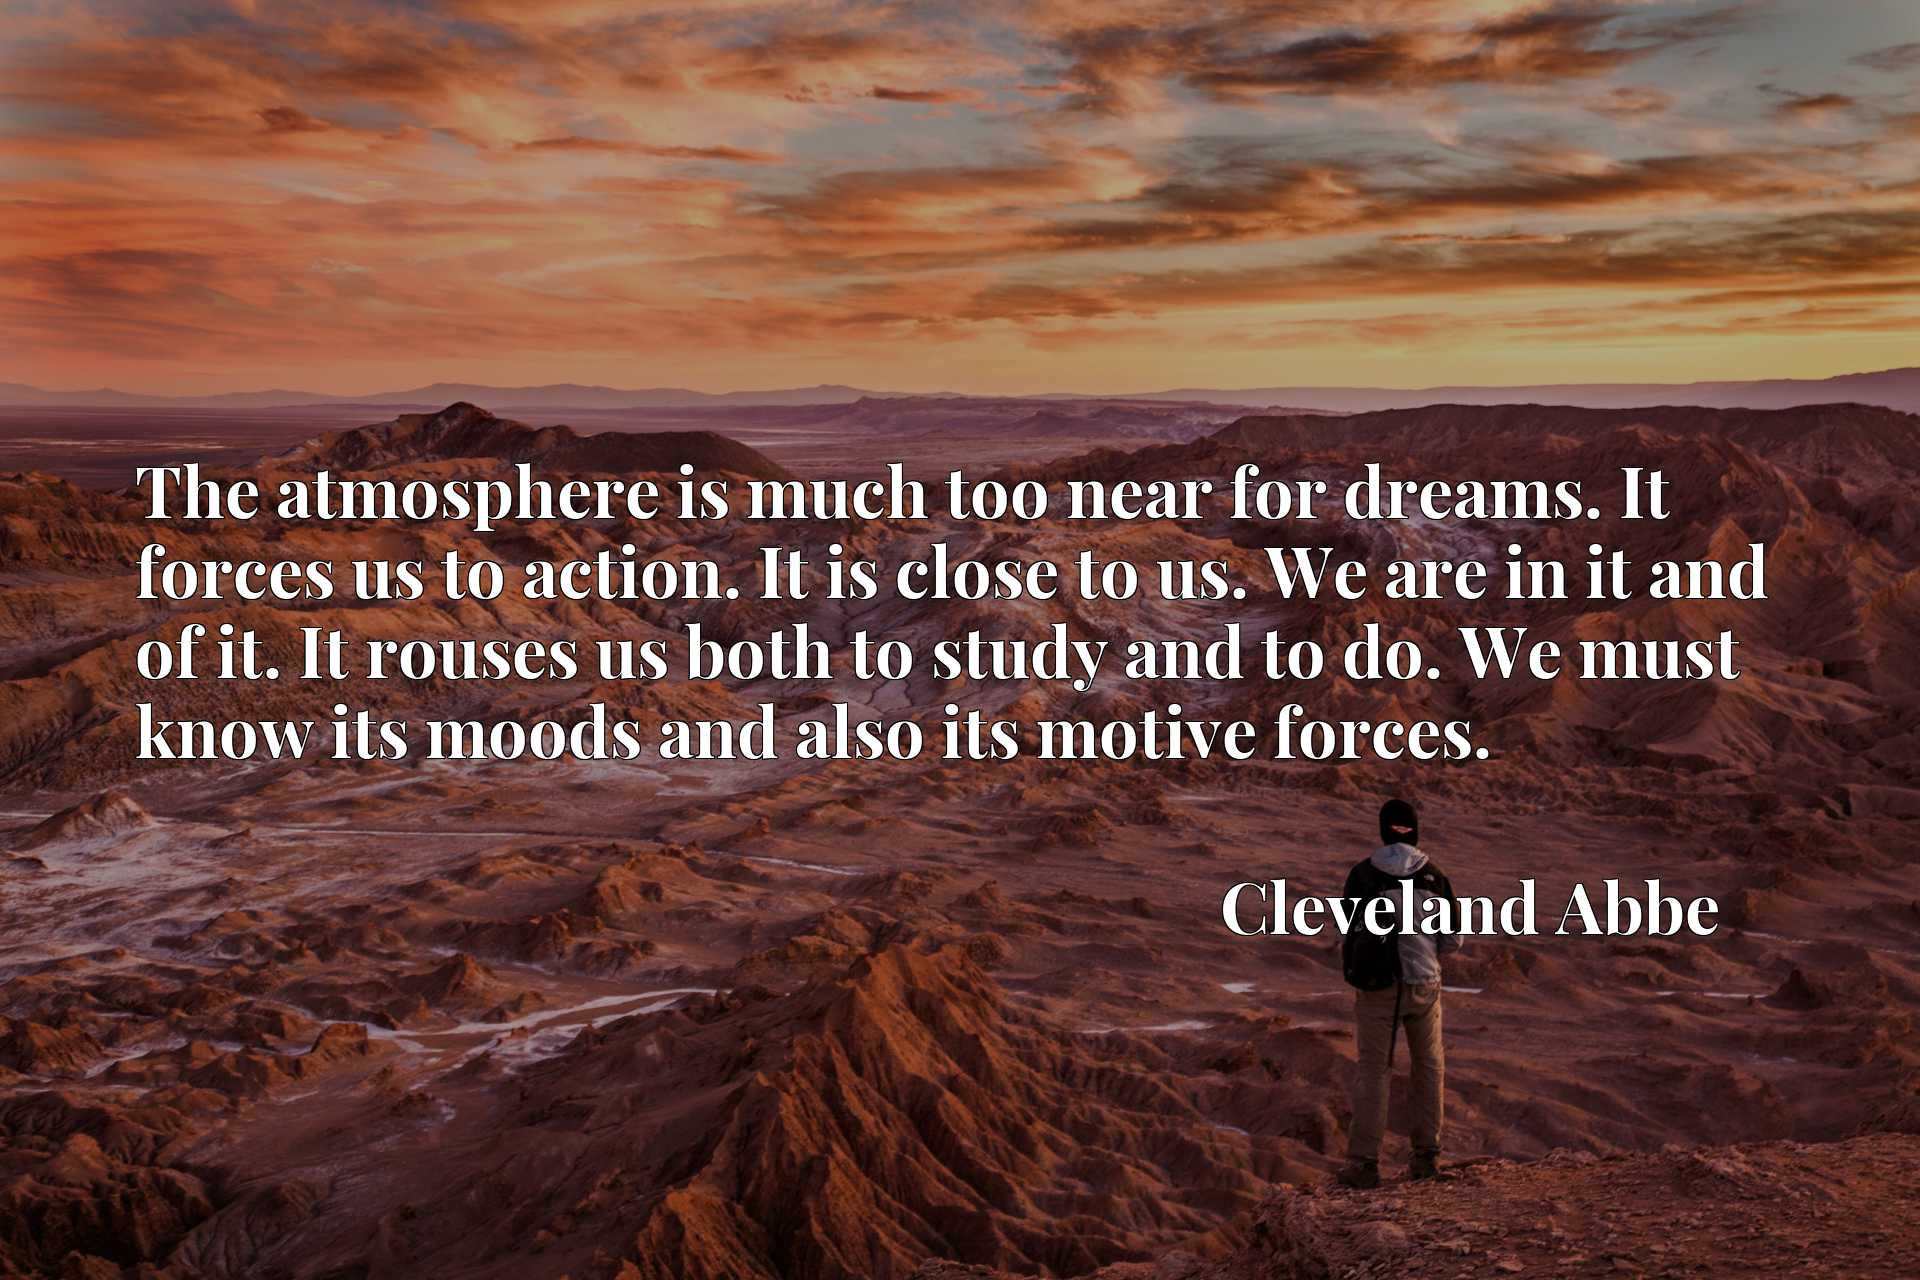 The atmosphere is much too near for dreams. It forces us to action. It is close to us. We are in it and of it. It rouses us both to study and to do. We must know its moods and also its motive forces.